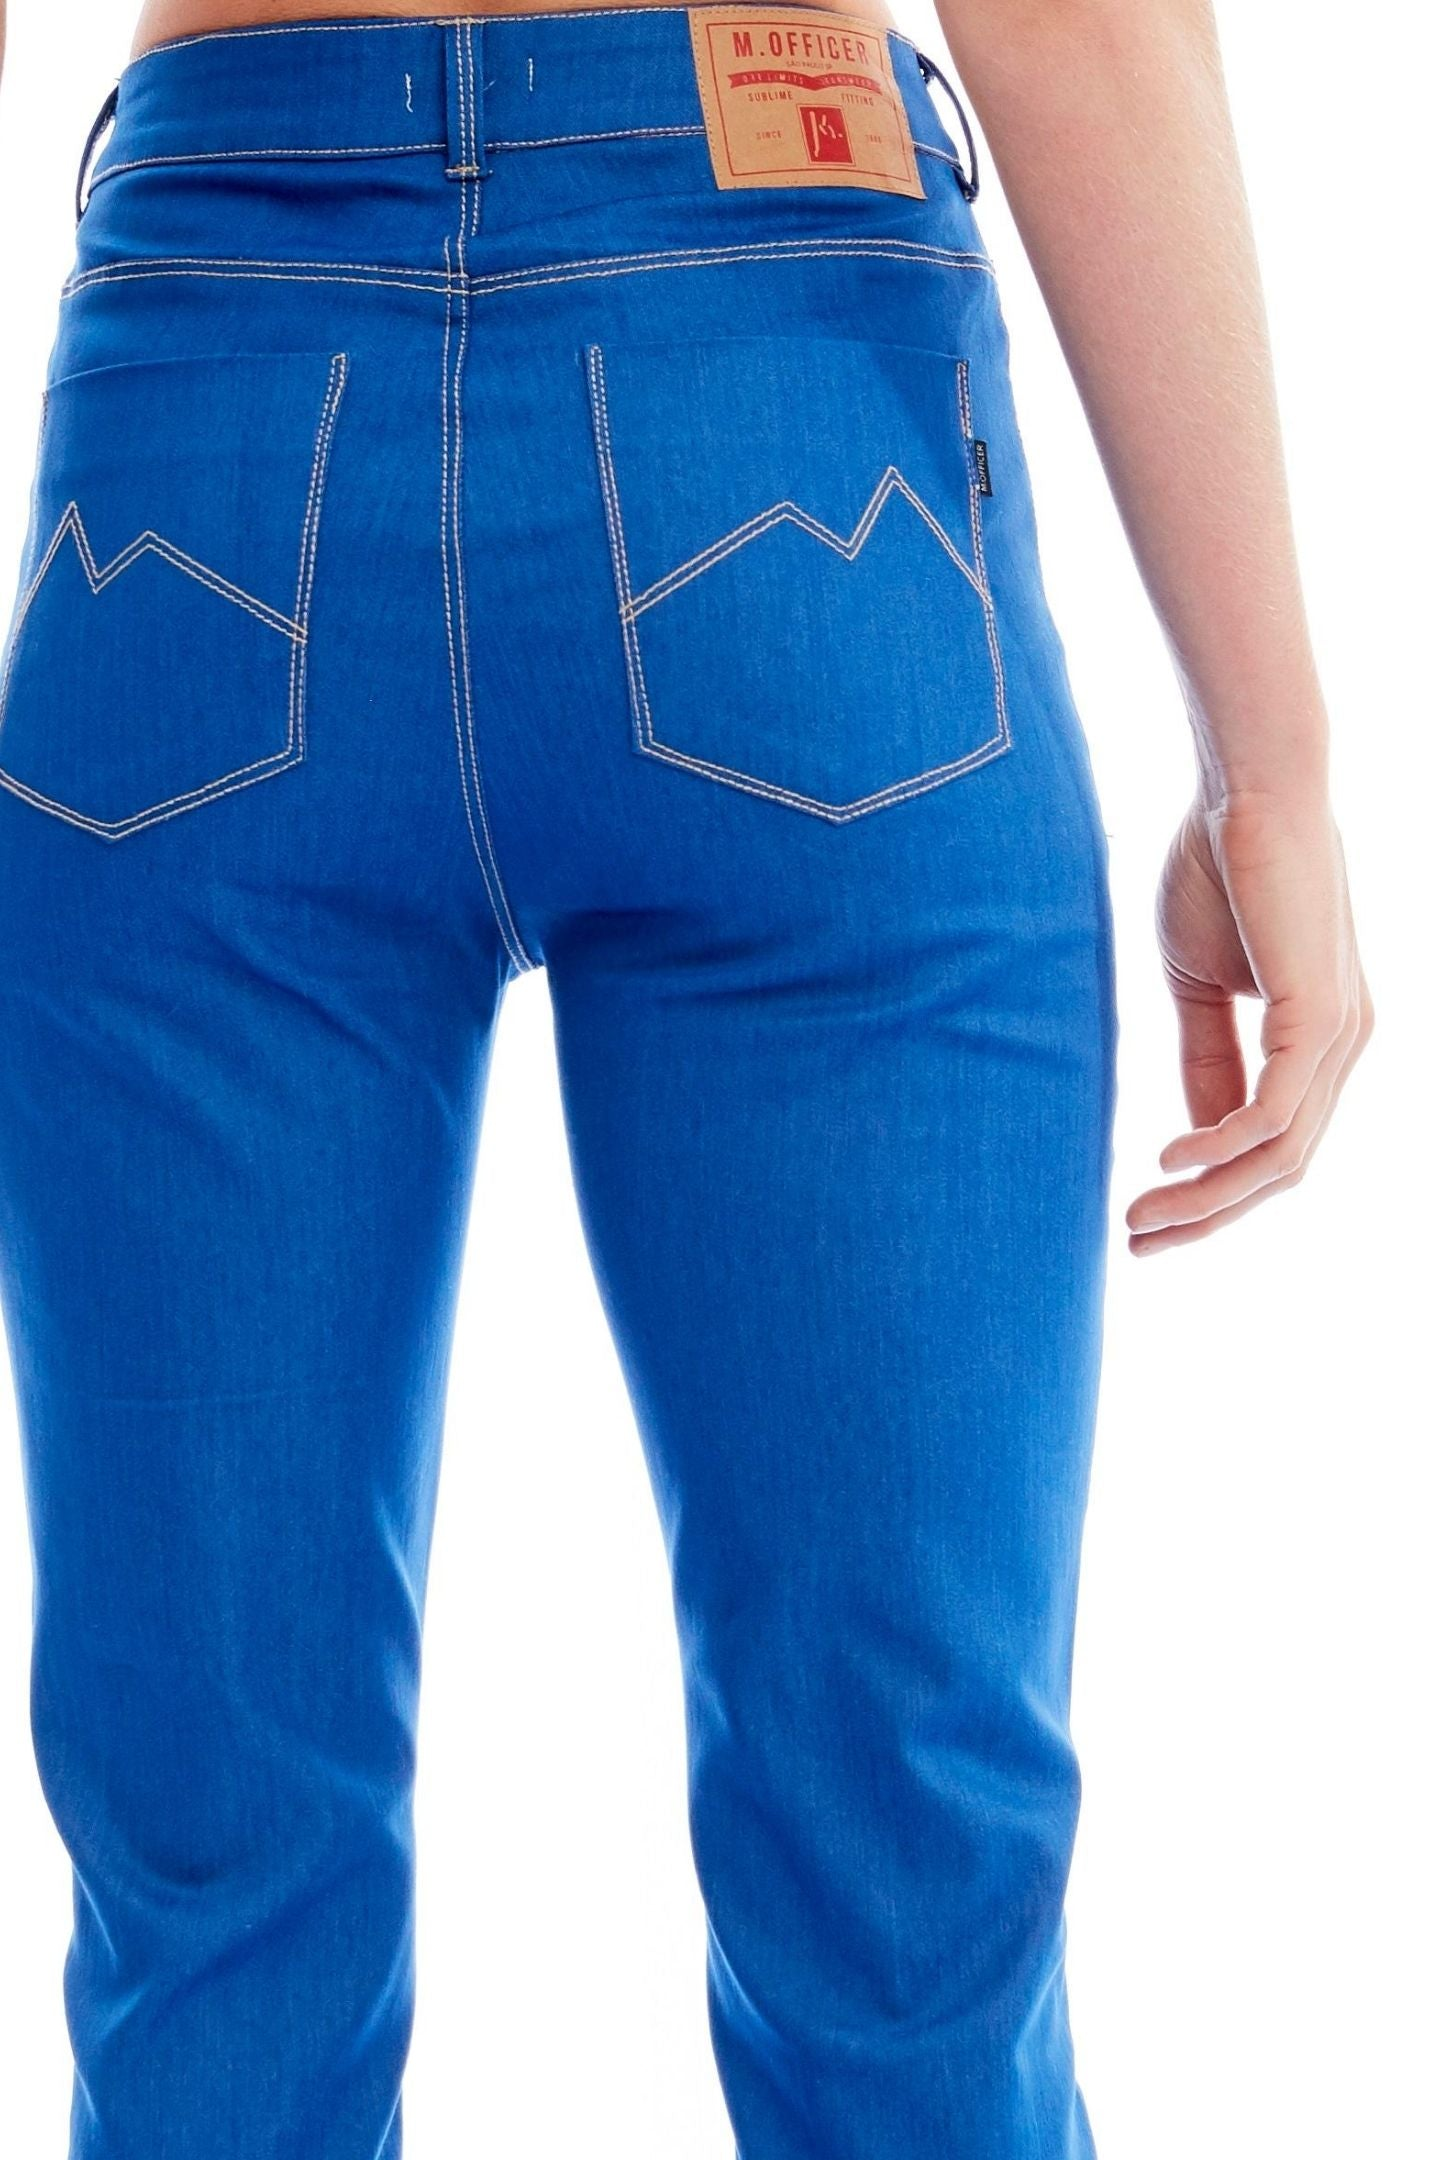 CALÇA JEANS C4 BOOT CUT ROYAL BLUE